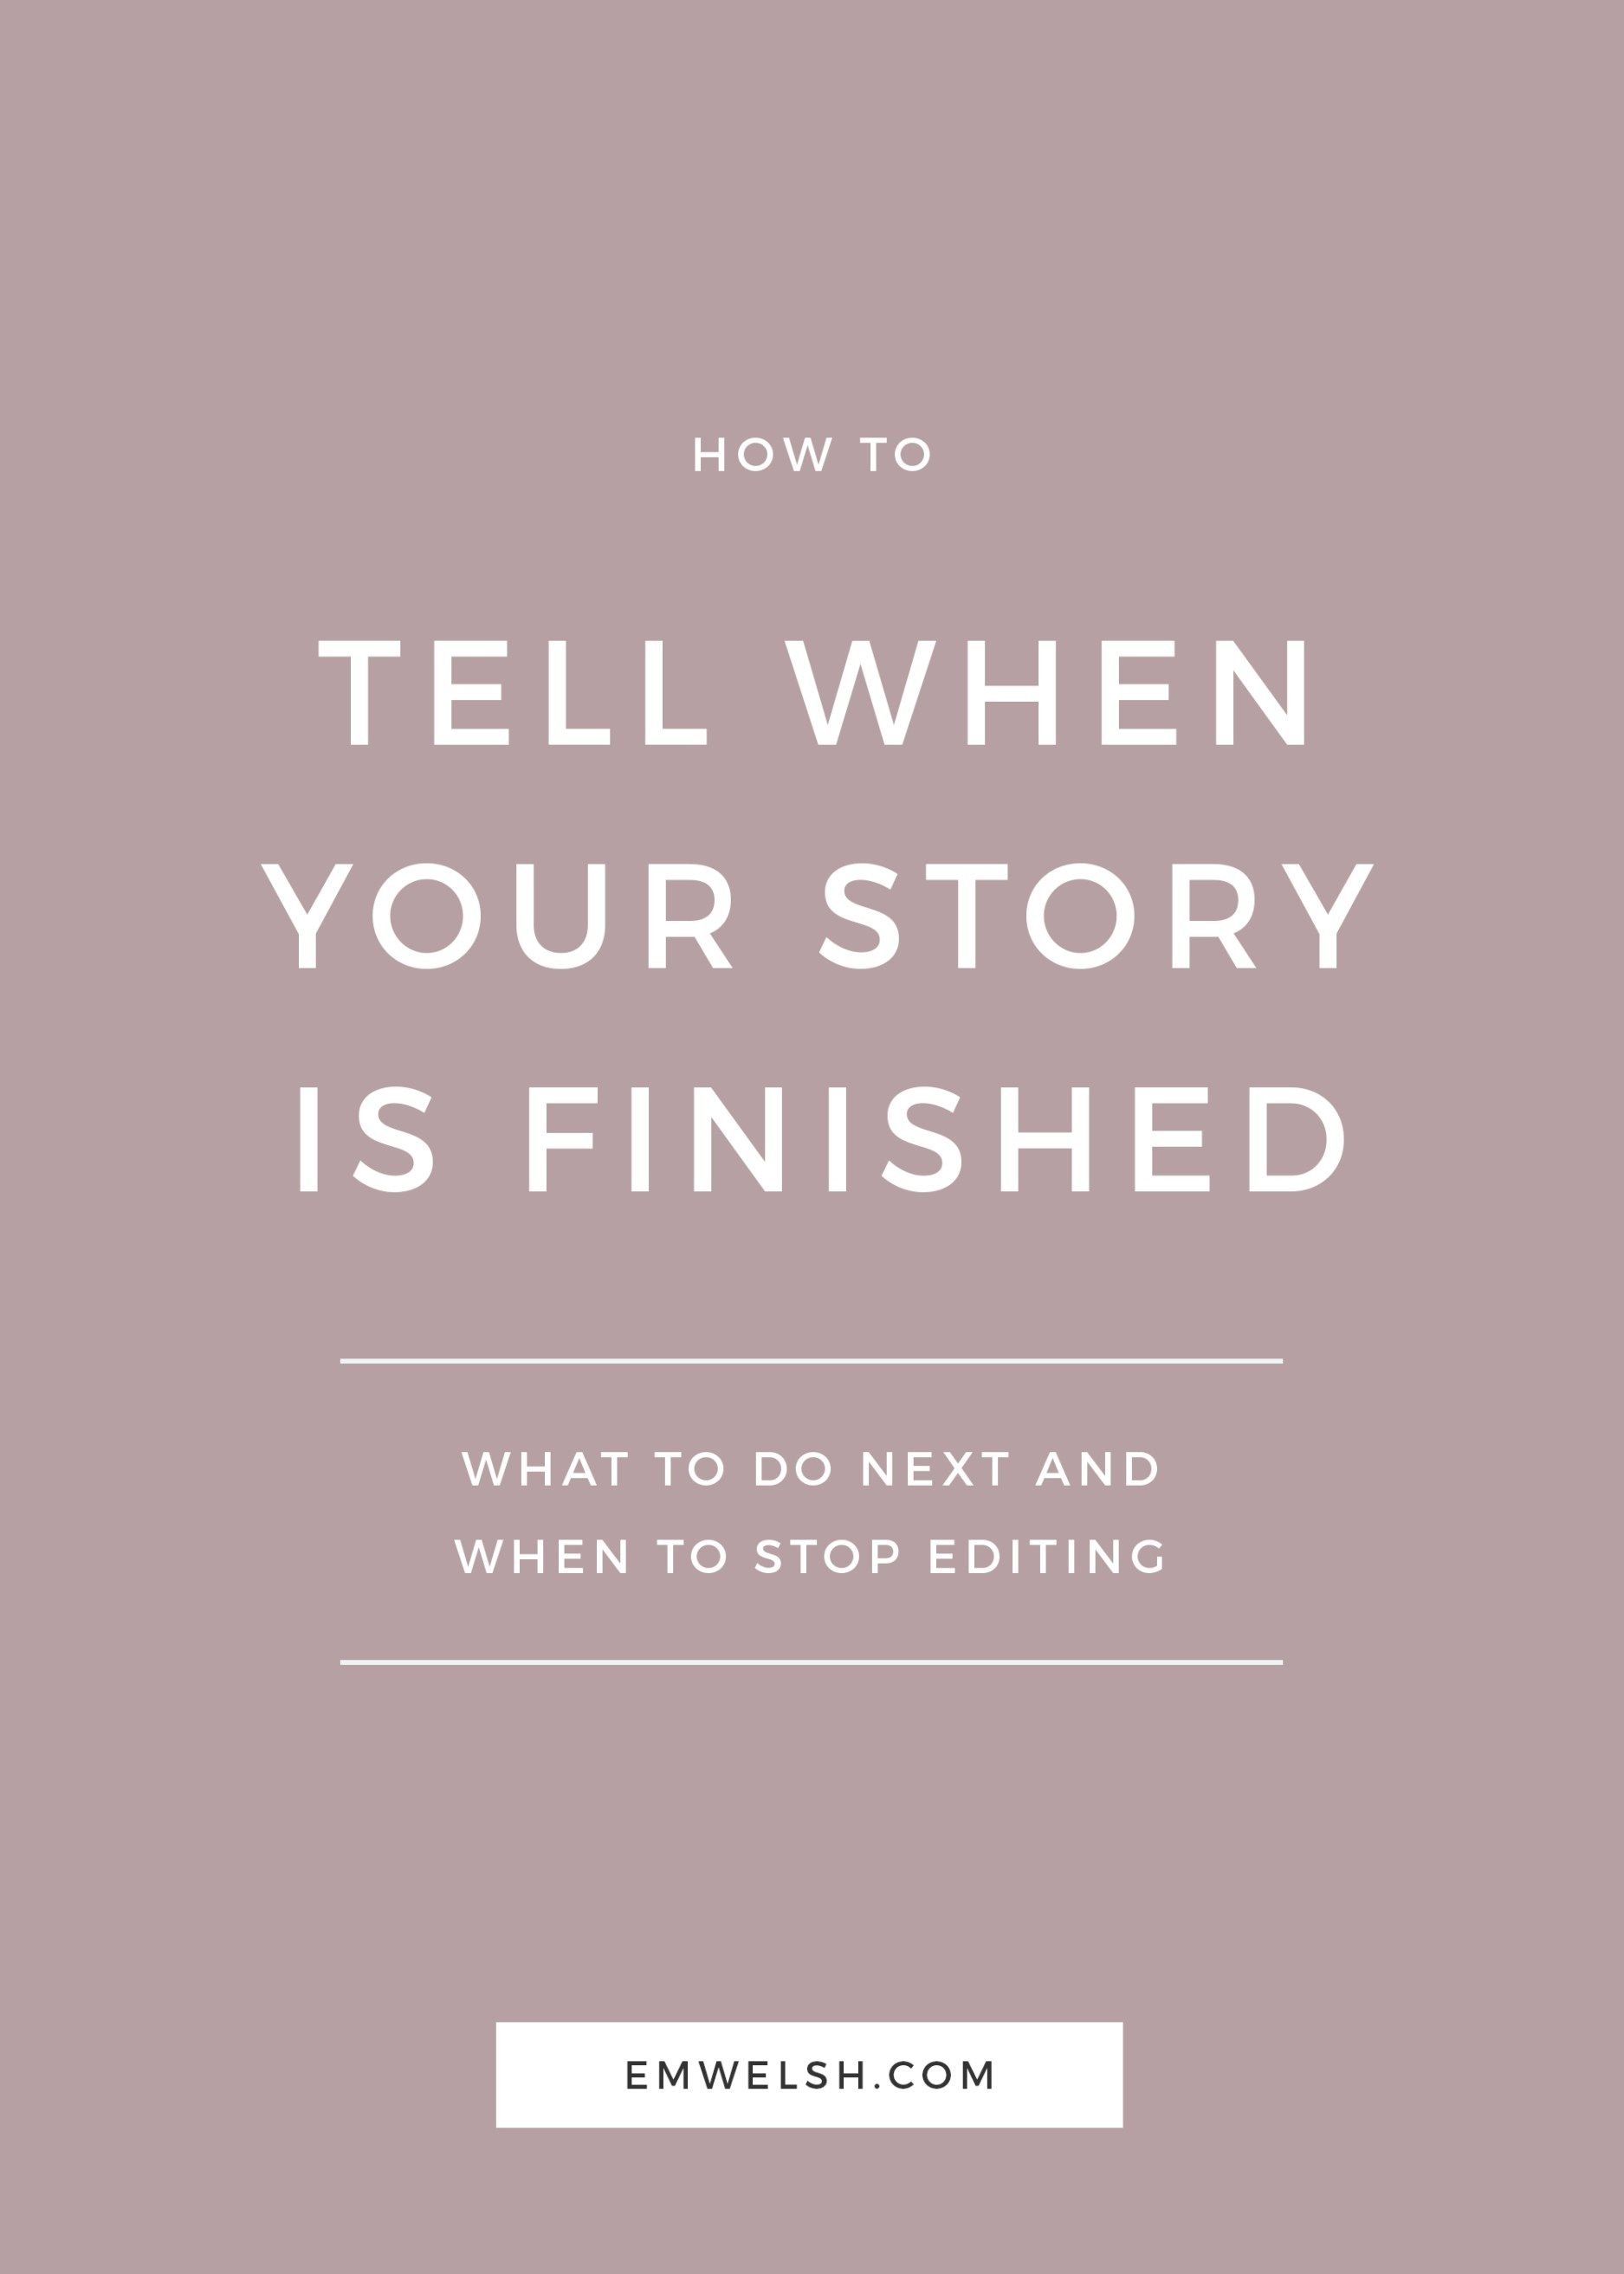 How To Tell When Your Story Is Finished